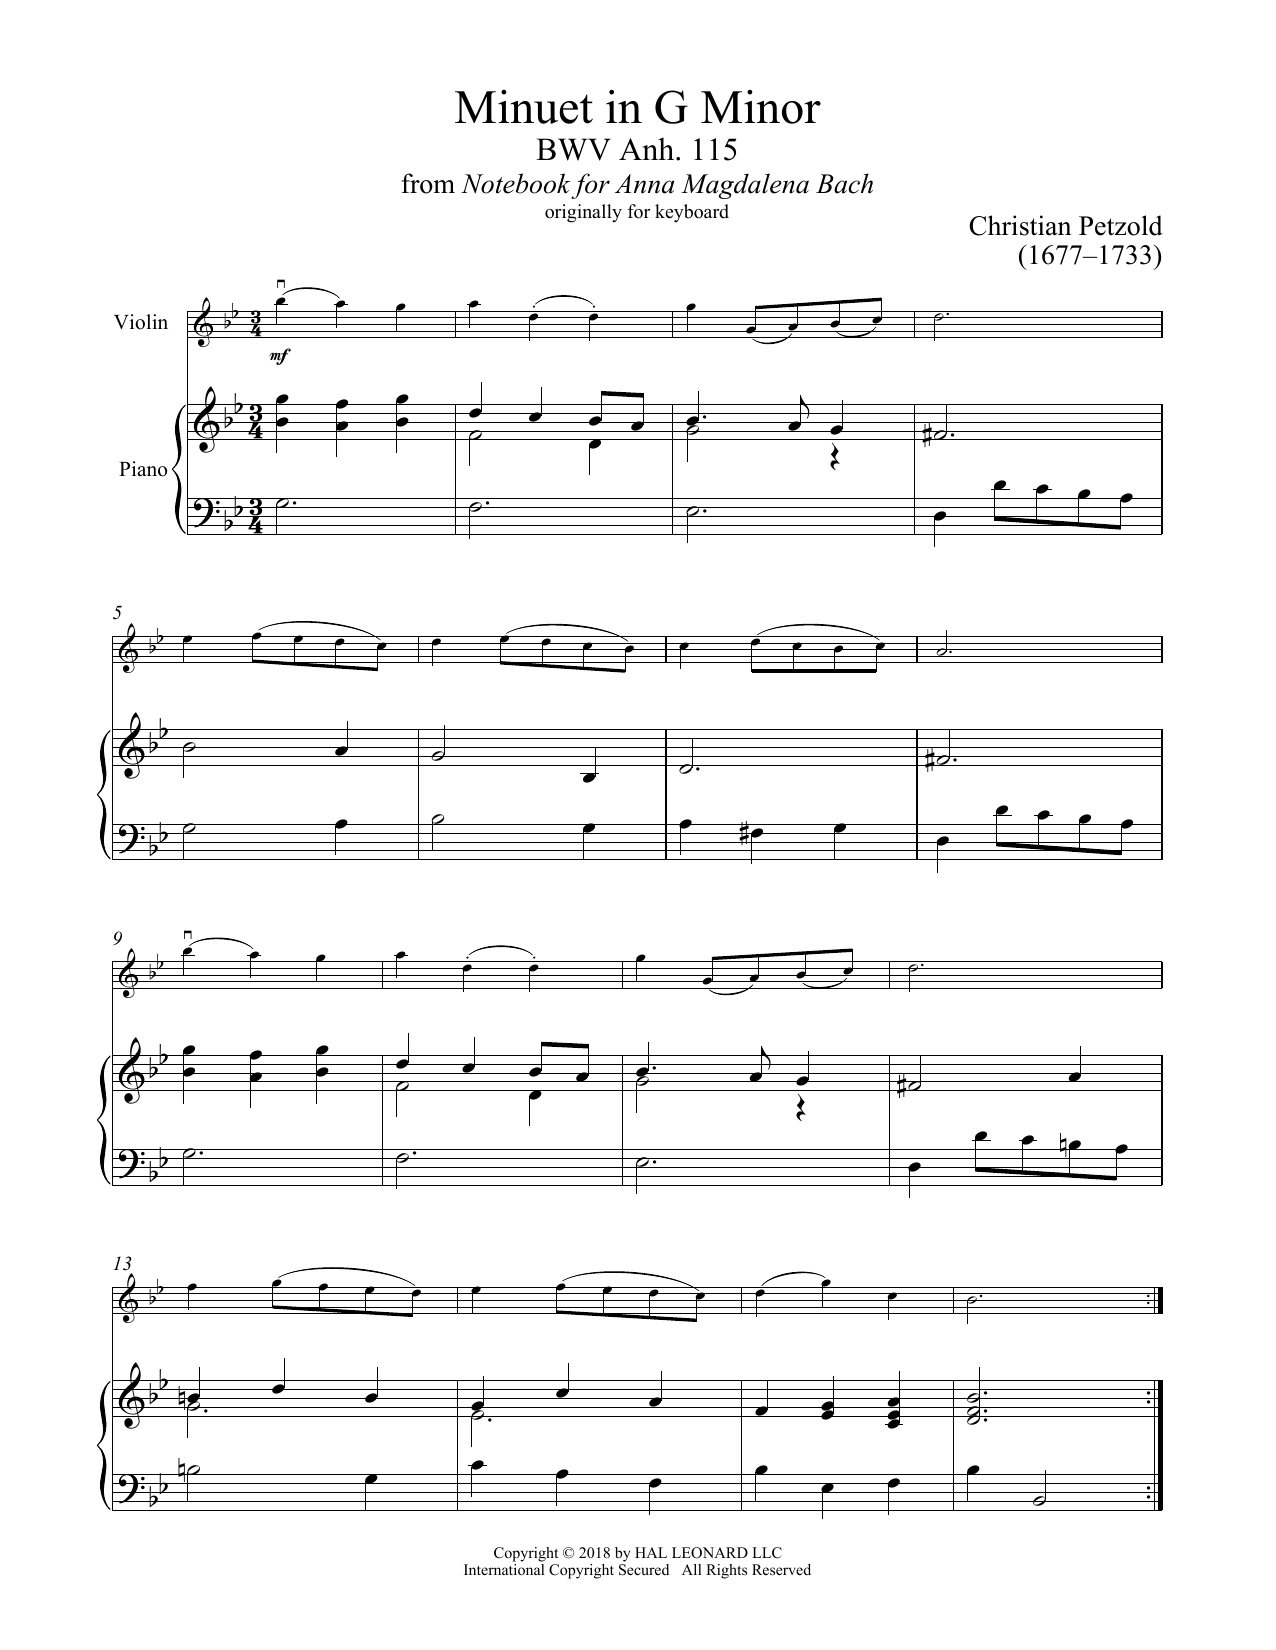 Download Christian Petzold 'Minuet In G Minor, BWV Anh. 115' Digital Sheet Music Notes & Chords and start playing in minutes